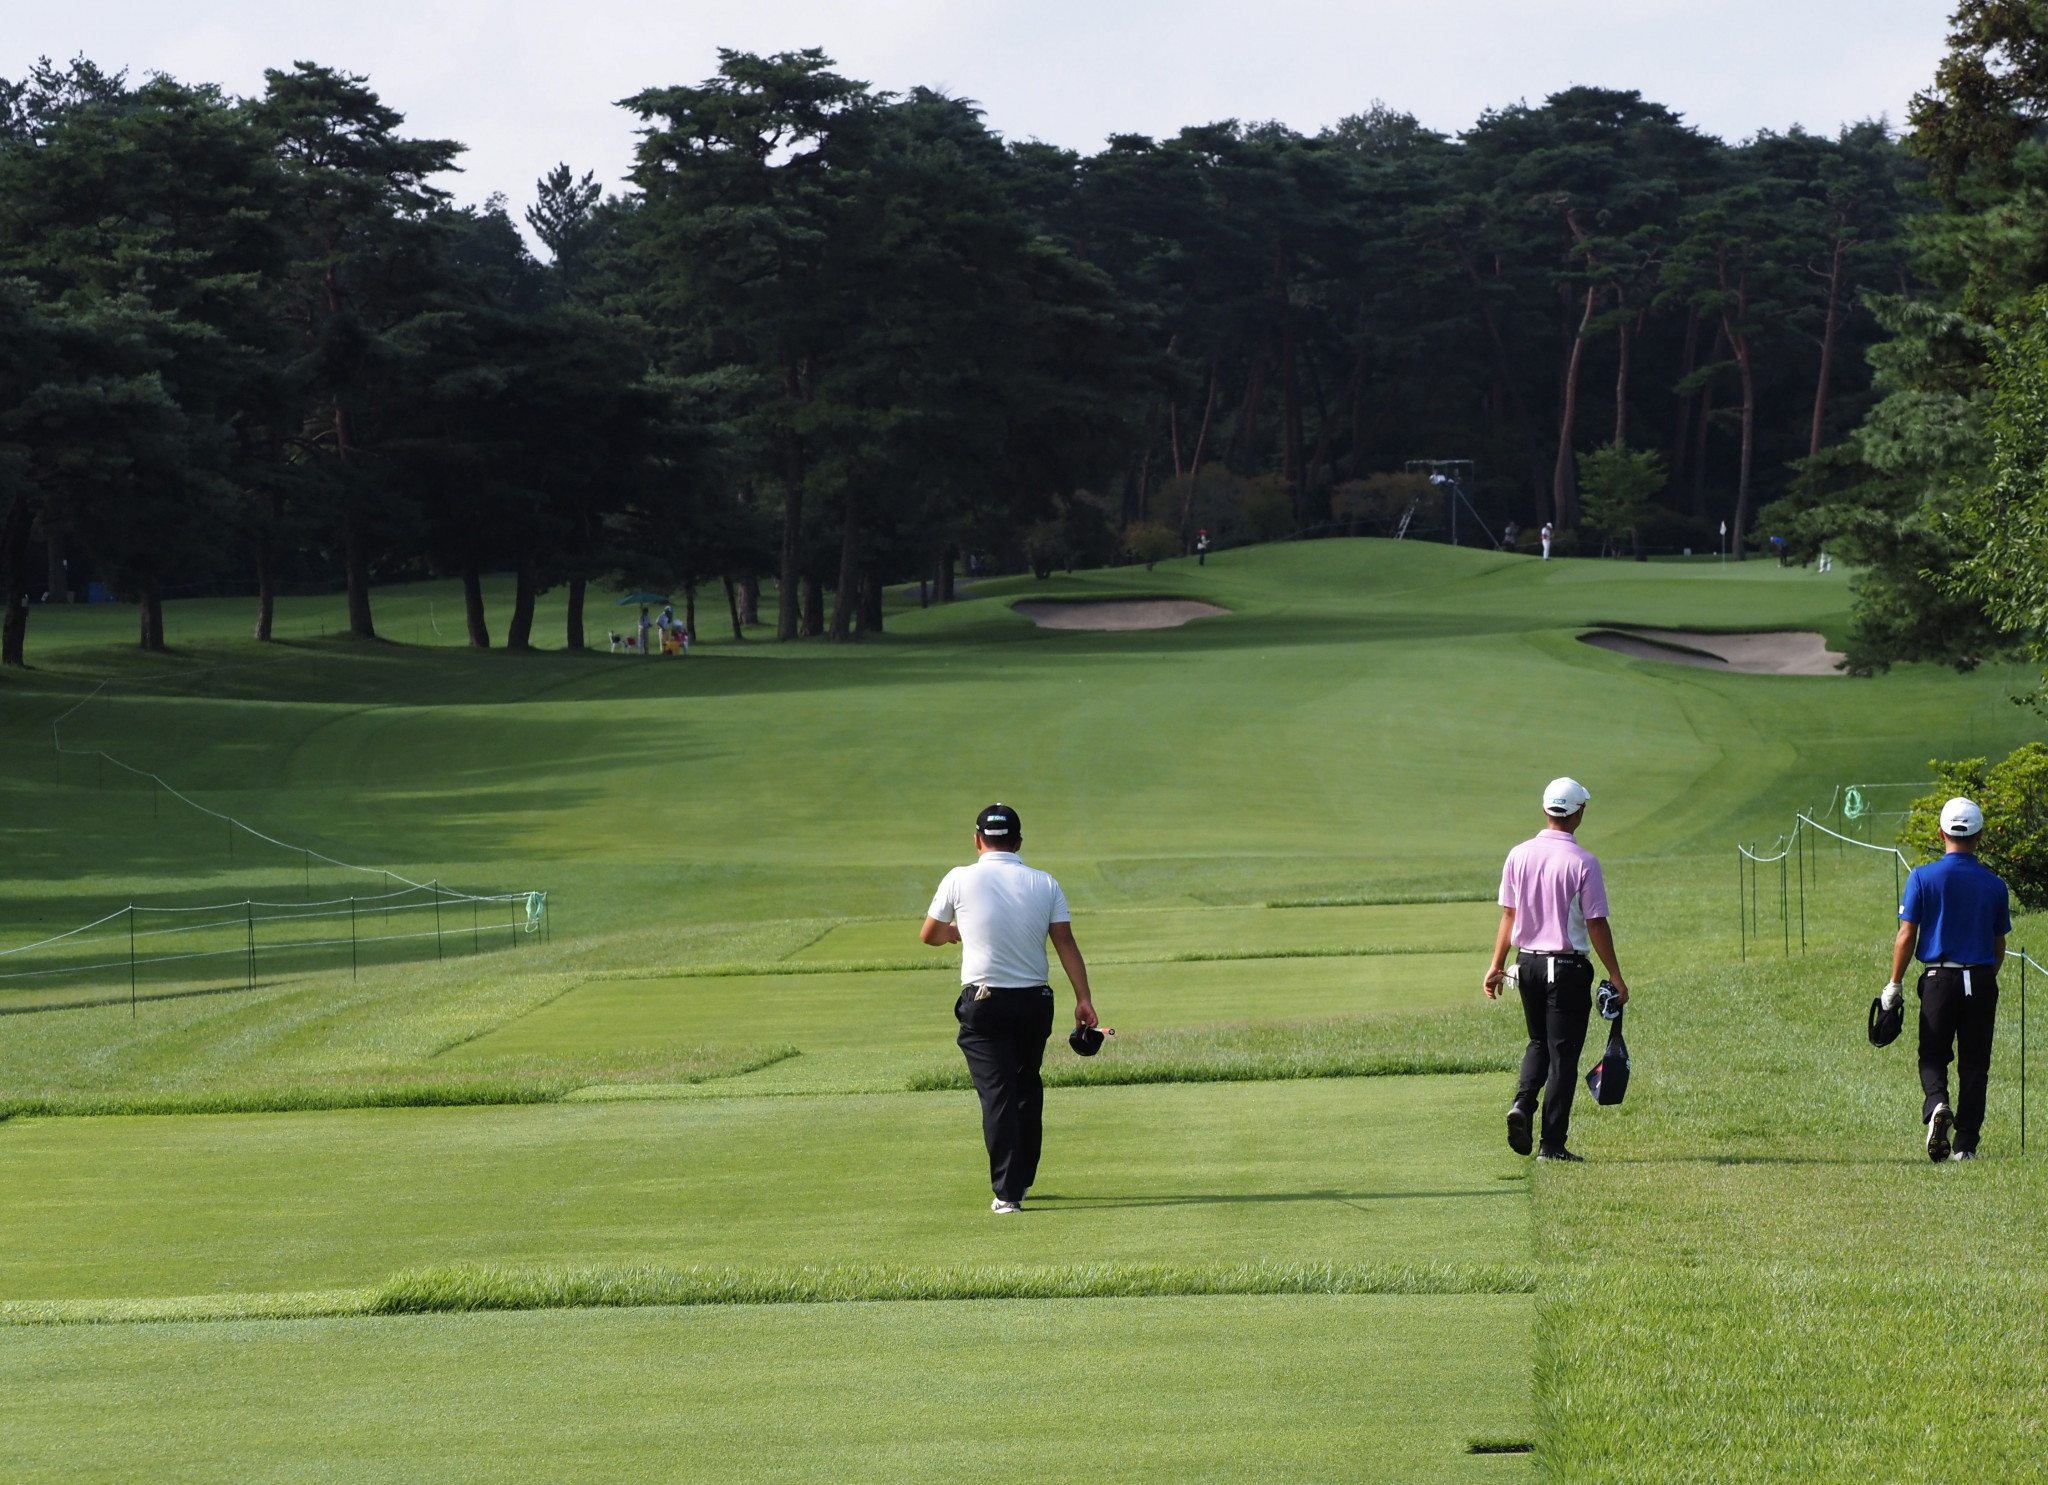 The Tokyo 2020 golf contest is set to be held at Kasumigaseki Country Club ©Getty Images